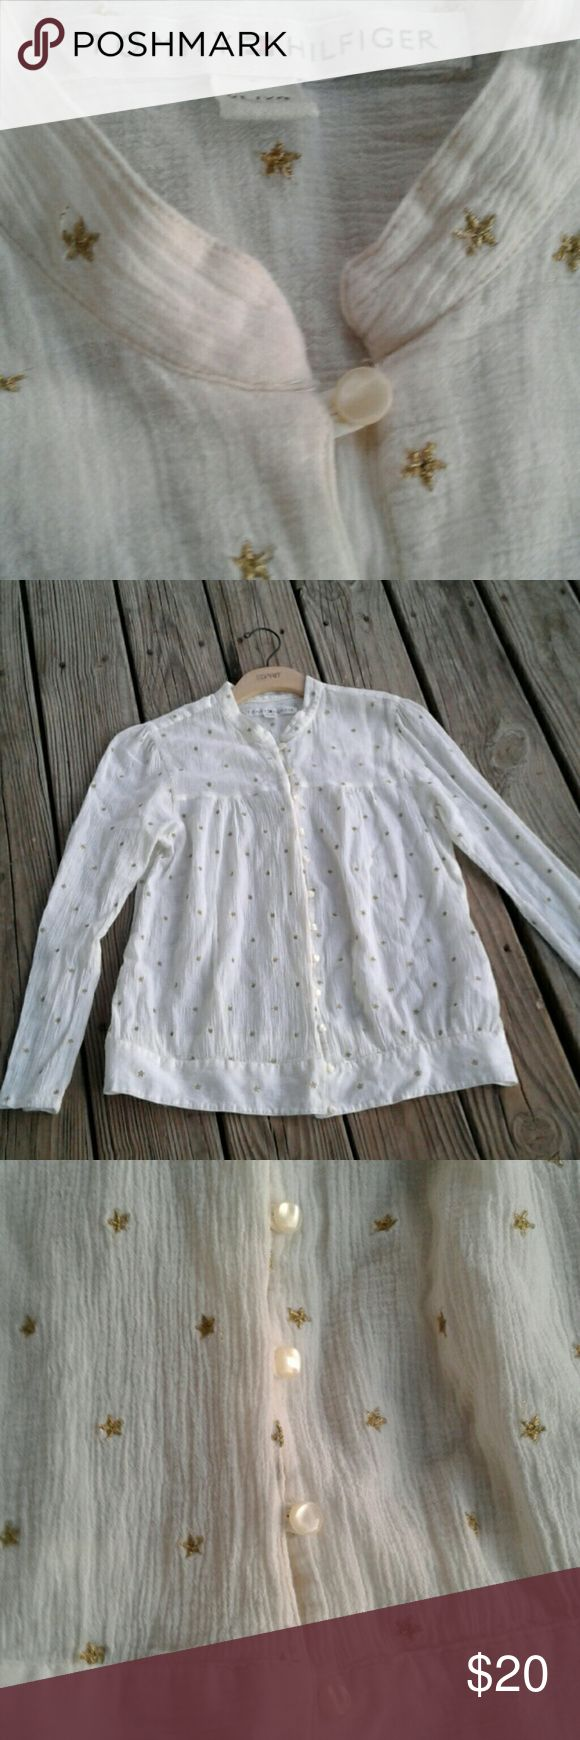 Tommy Hilfiger Metallic Stars Shirt Nice metallic stars cream and gold shirt.  100% cotton but a gauzy romantic style. Tommy Hilfiger Tops Blouses